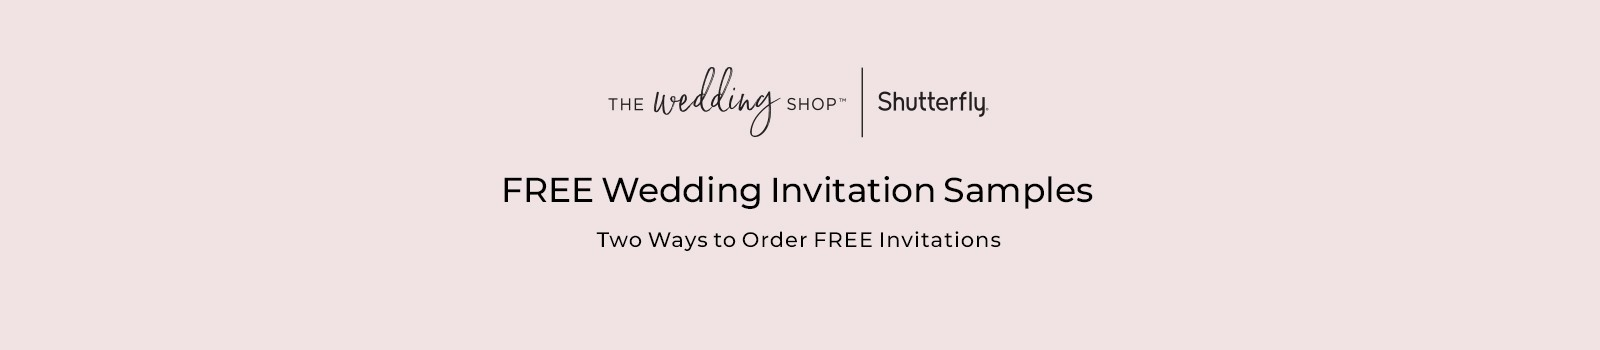 Free Wedding Invitation Samples Shutterfly